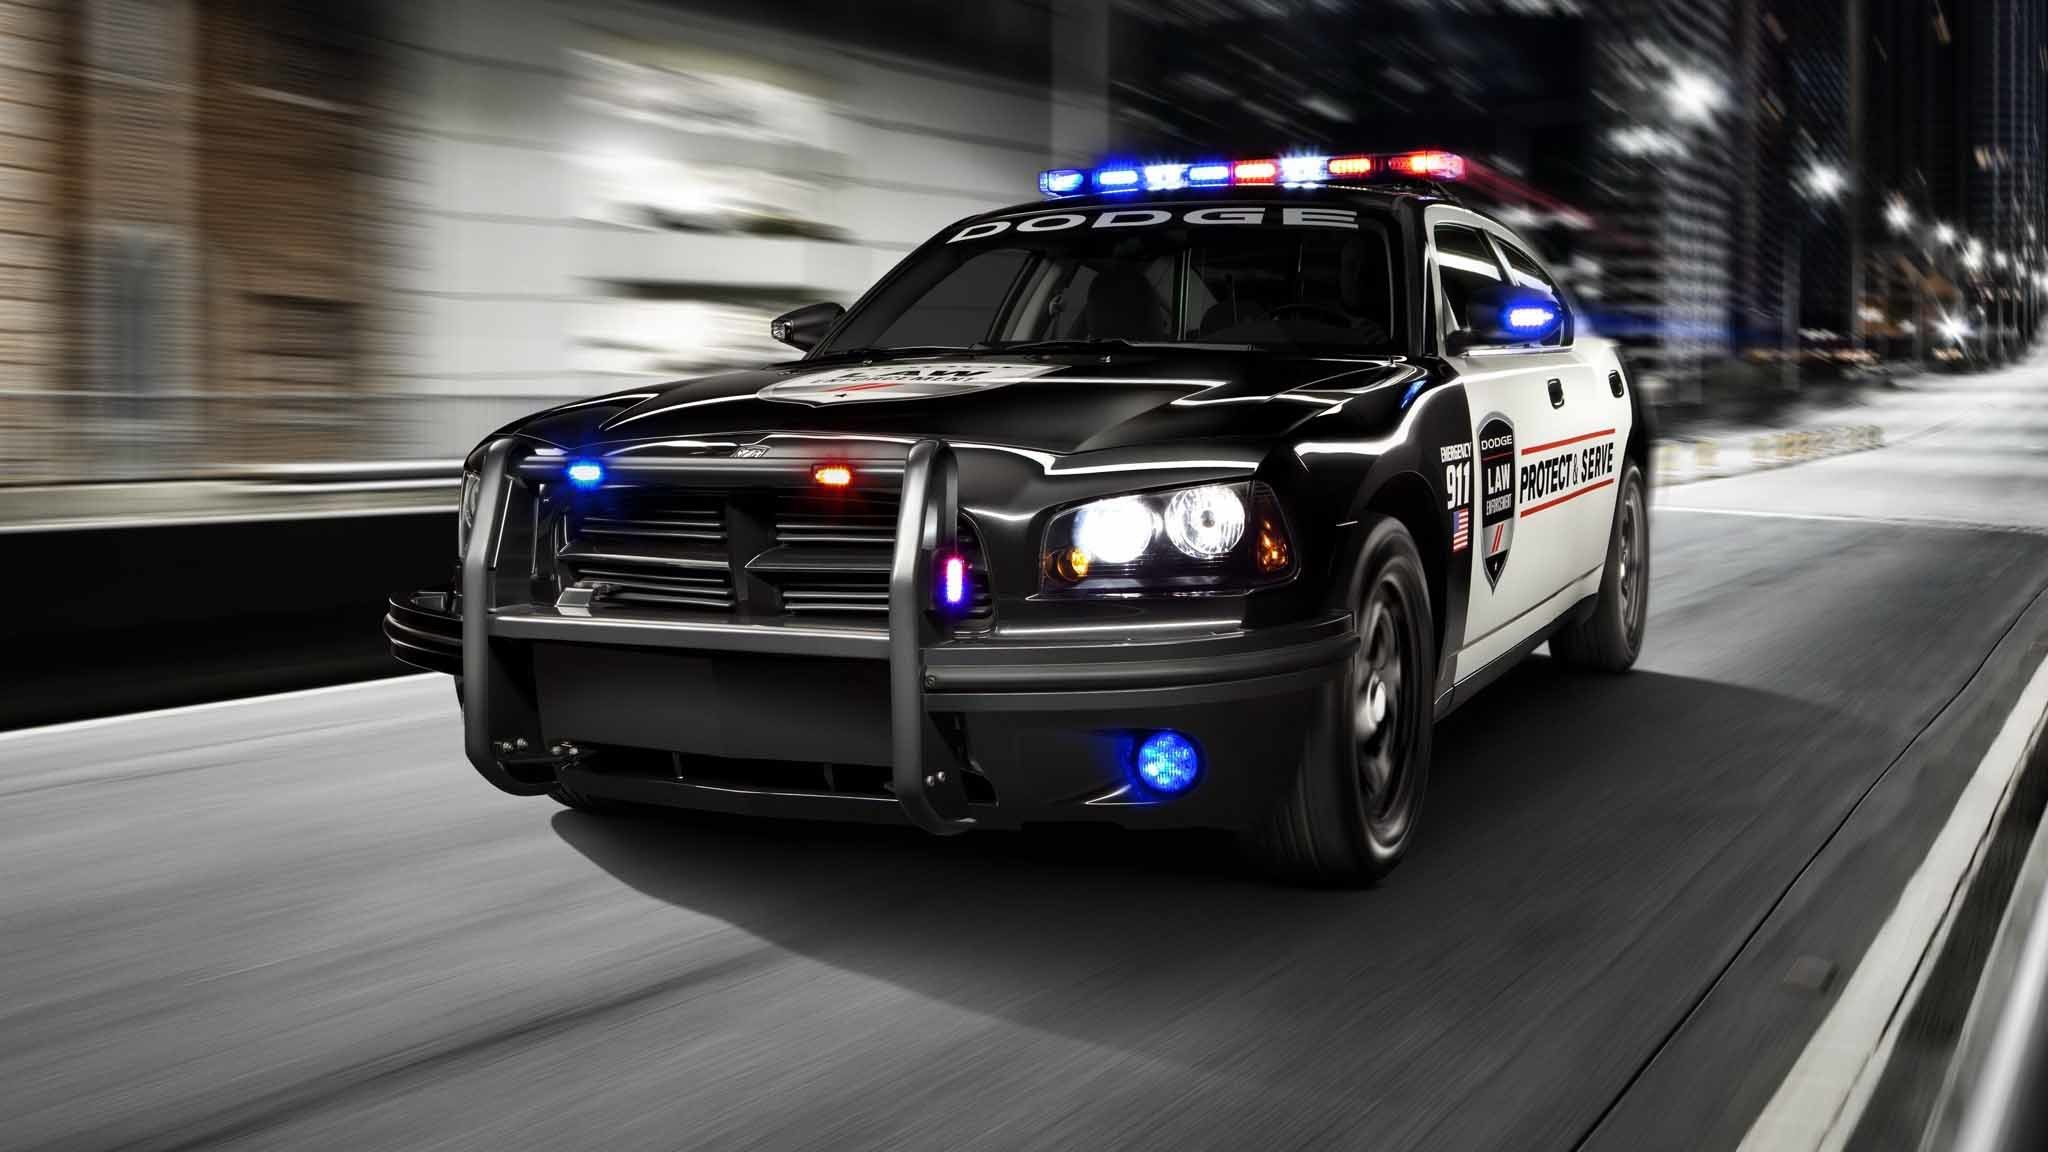 Res: 2048x1152, Wallpapers Tagged With POLICE POLICE Car Wallpapers, Images